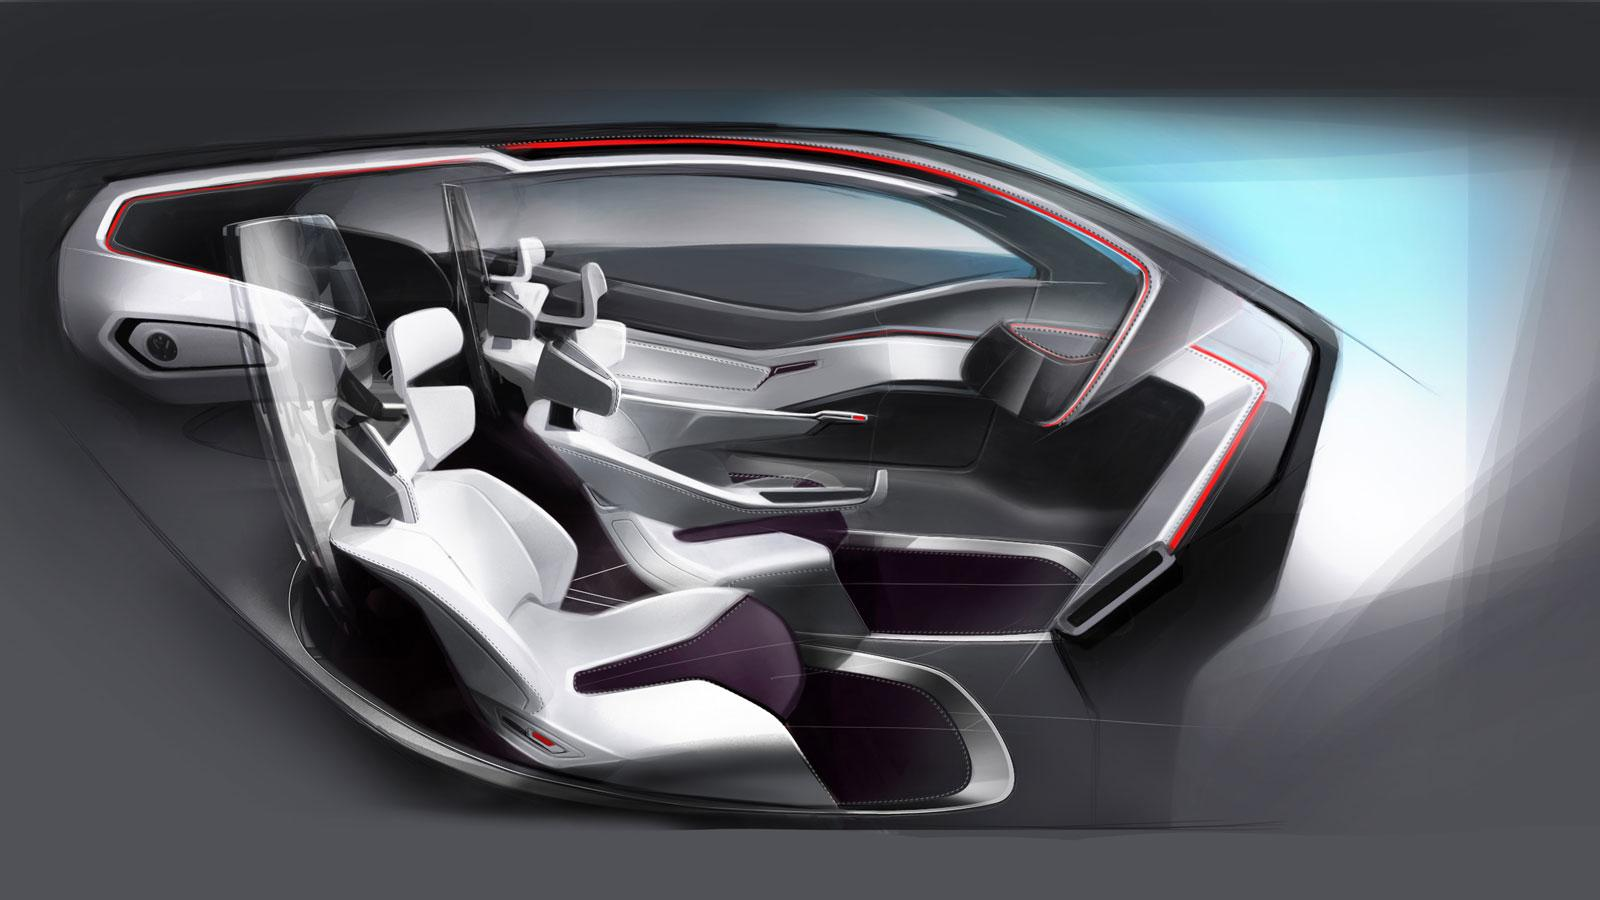 Volkswagen Trimaran Concept - Interior - Car Body Design